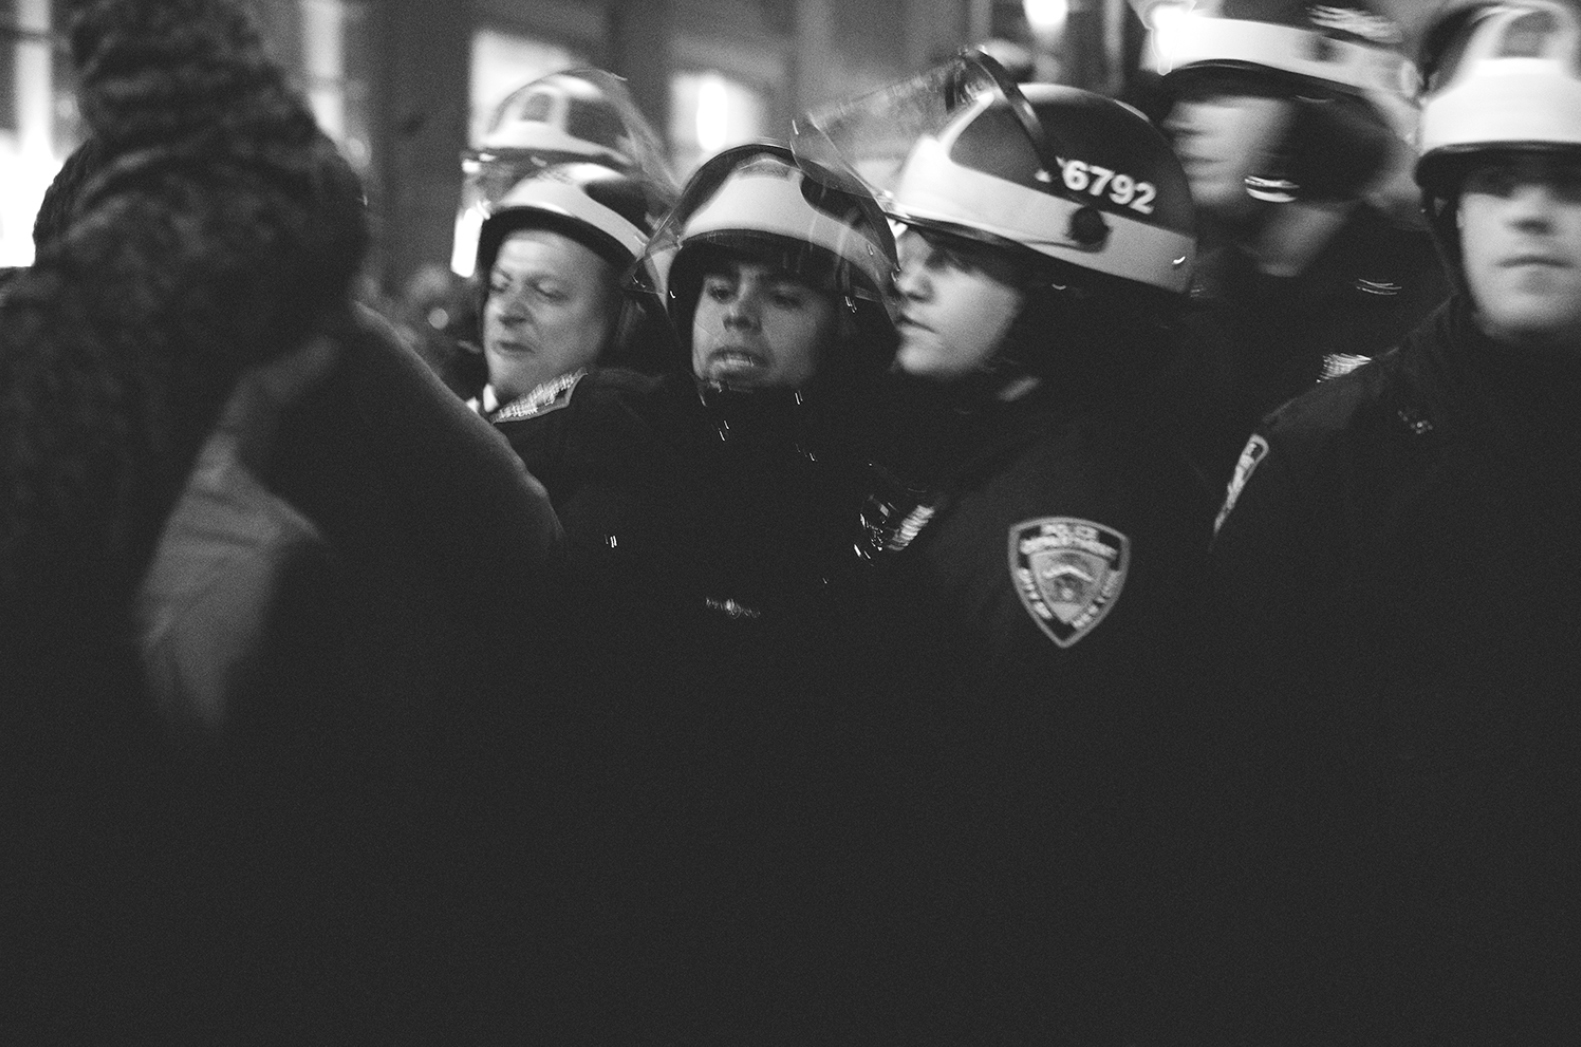 To Serve And Protect 01 and 02 Occupy Wall Street New York City 2011